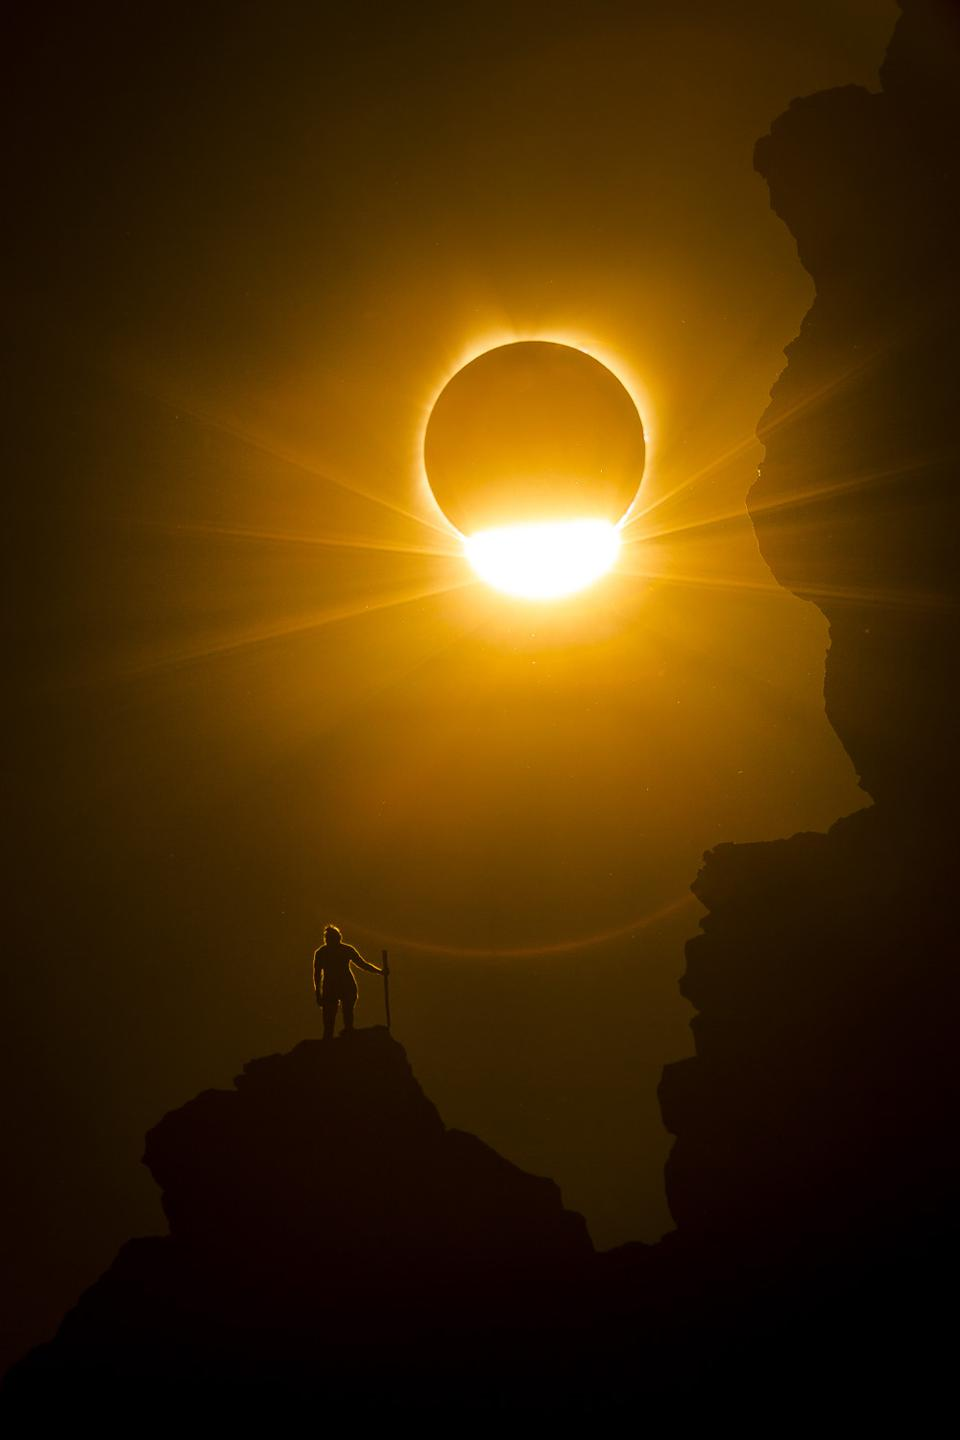 A total solar eclipse on August 21, 2017 from Smith Rock National Park, Oregon, USA.